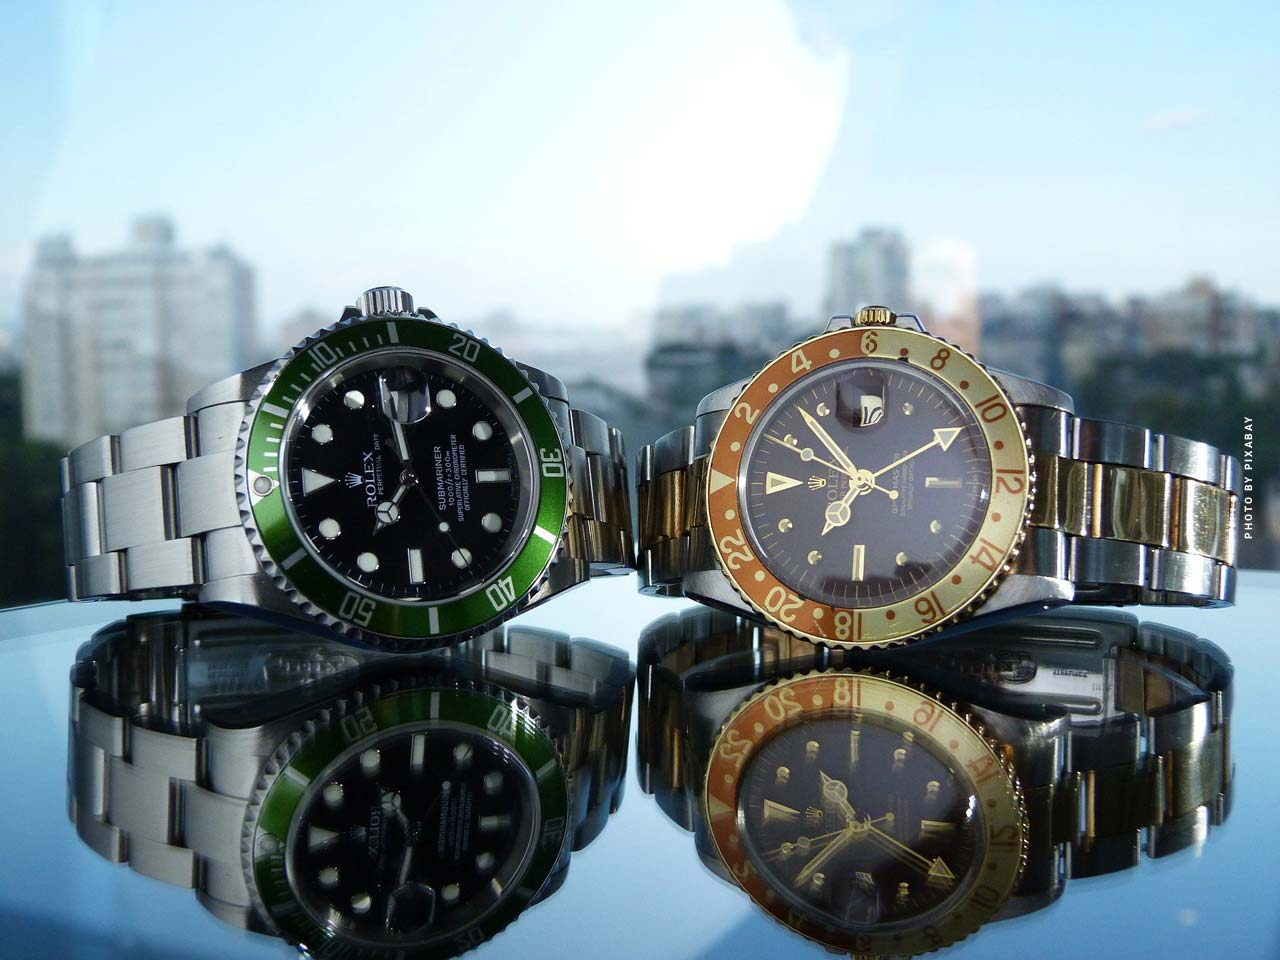 The most expensive Rolex watch: Price & models Daytona, Day Date, Submariner - Top10